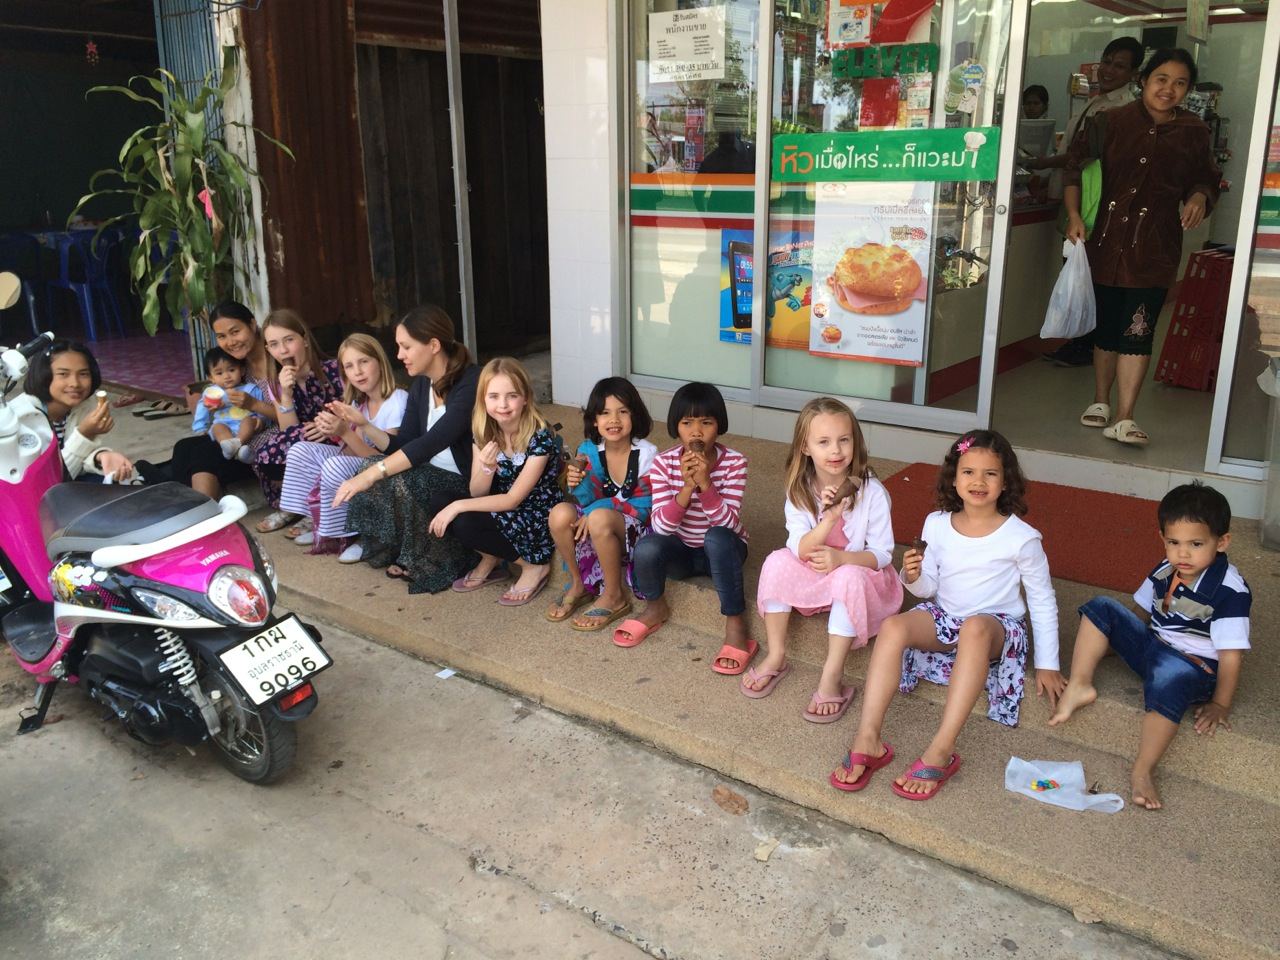 Kids eating ice cream on the steps on a 7/11